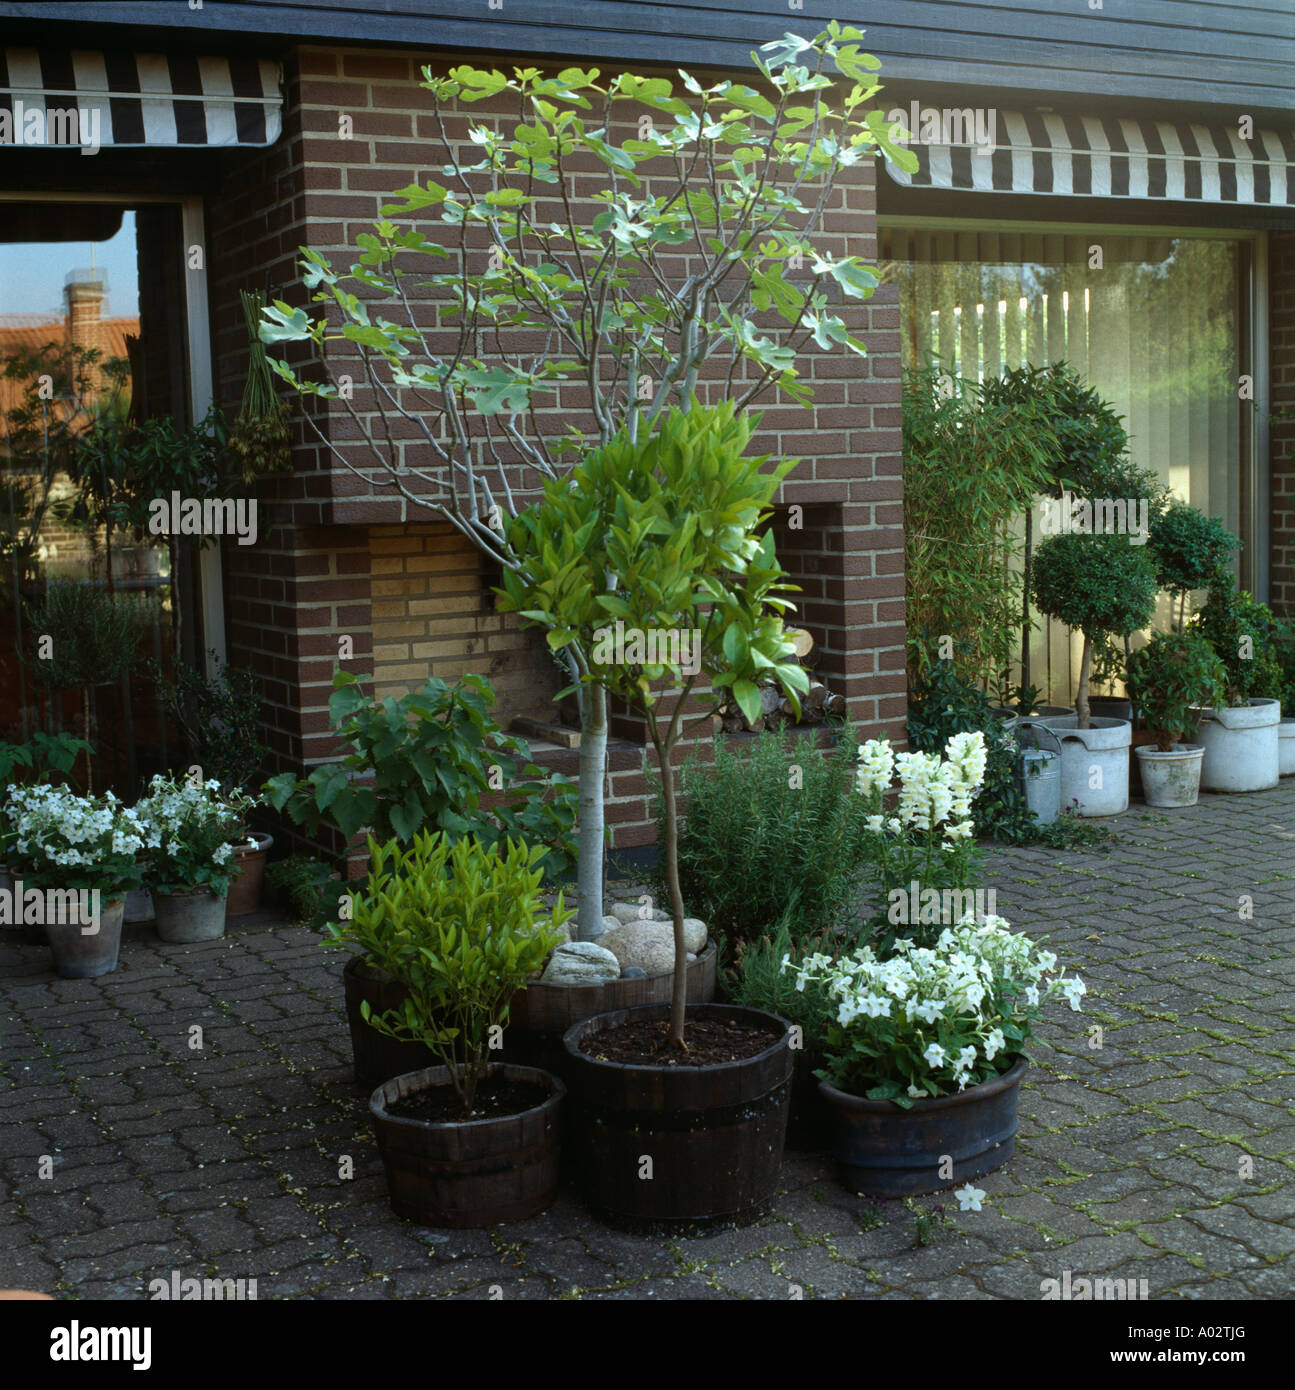 Great Small Trees And Shrubs In Groups Of Old Barrels And Pots On Paved Patio Of  Small Modern Townhouse